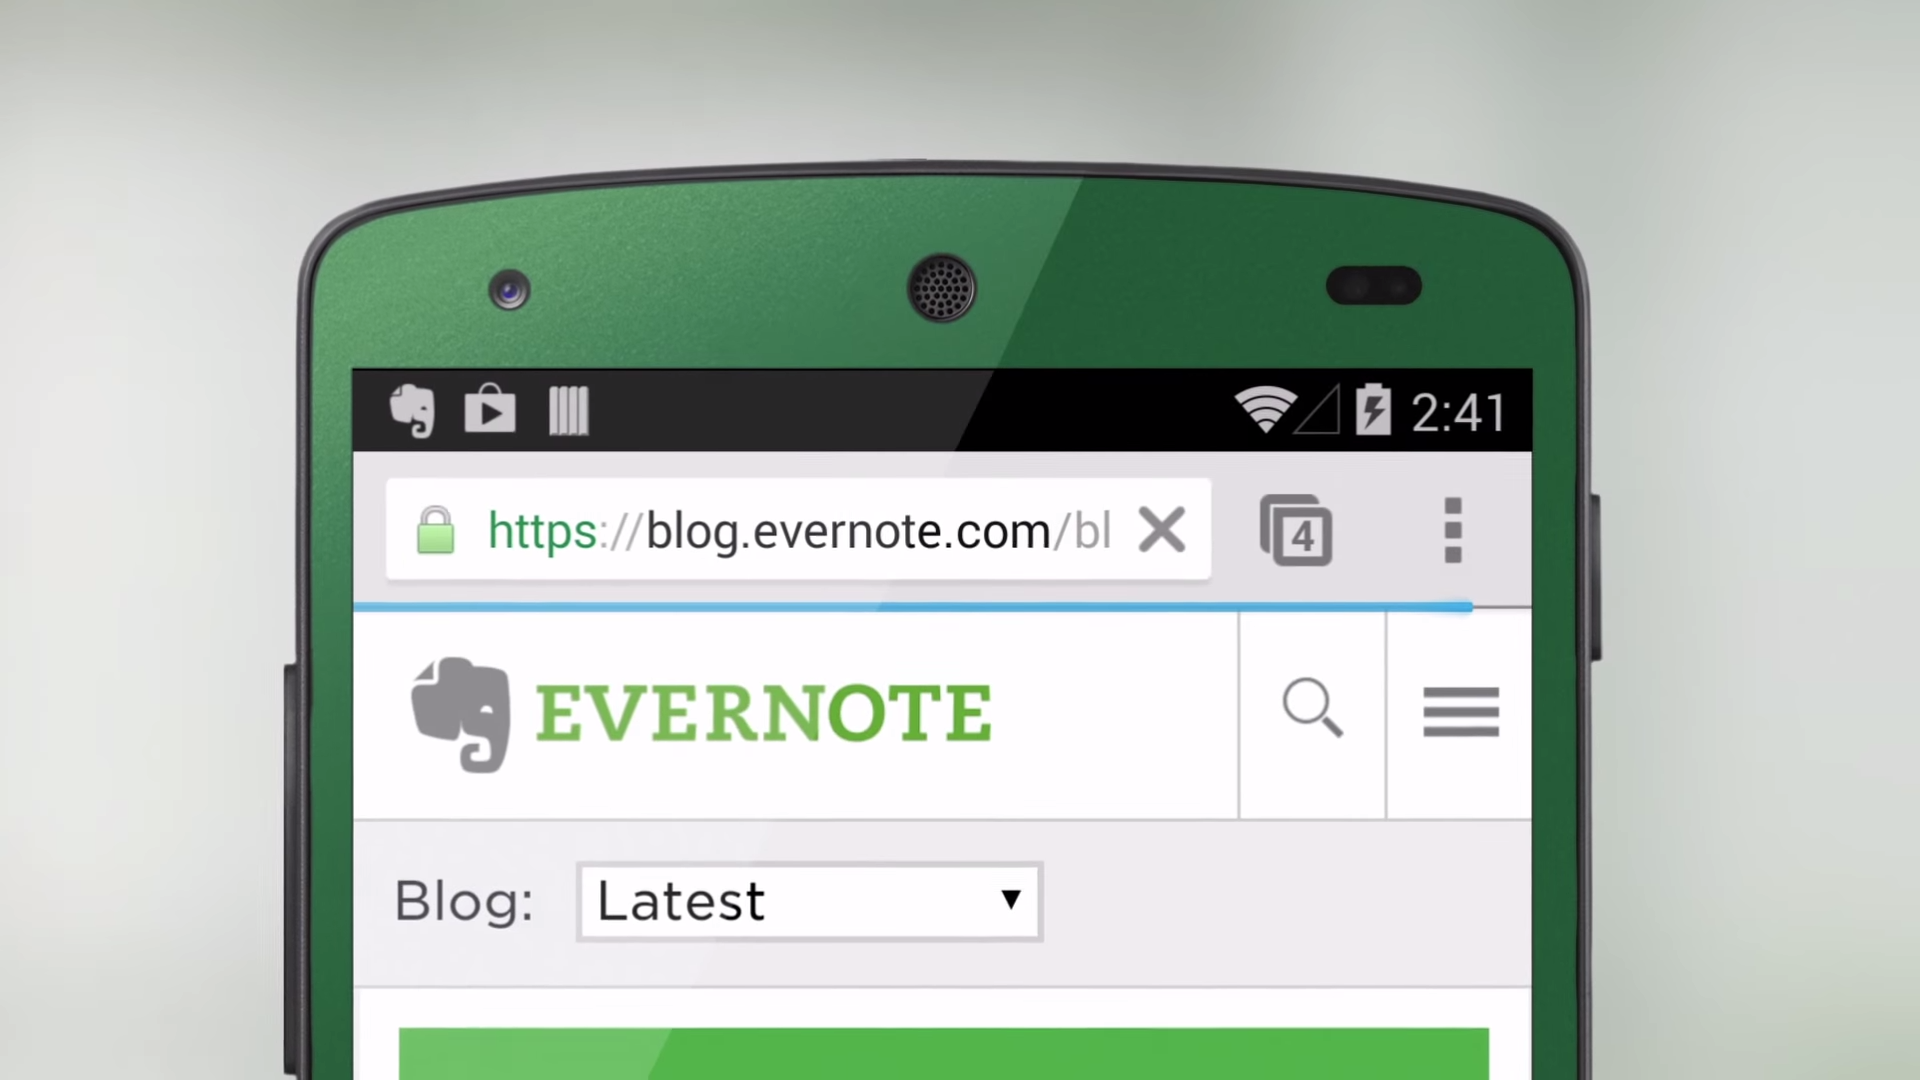 evernote-screenshot-04